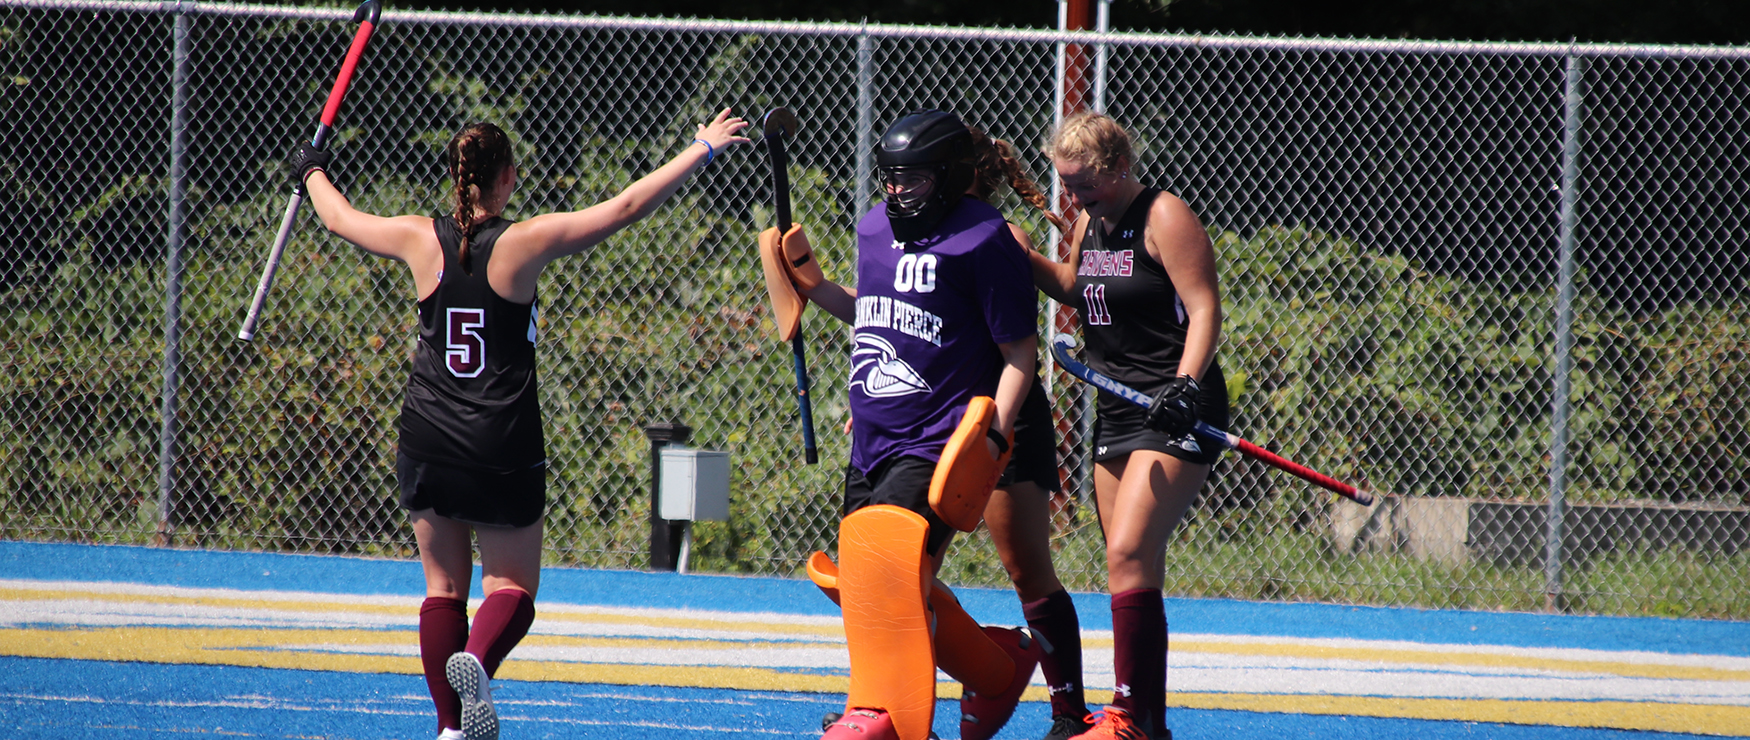 Winn Nets First Two Career Goals as Field Hockey Blanks New Haven Again, 3-0